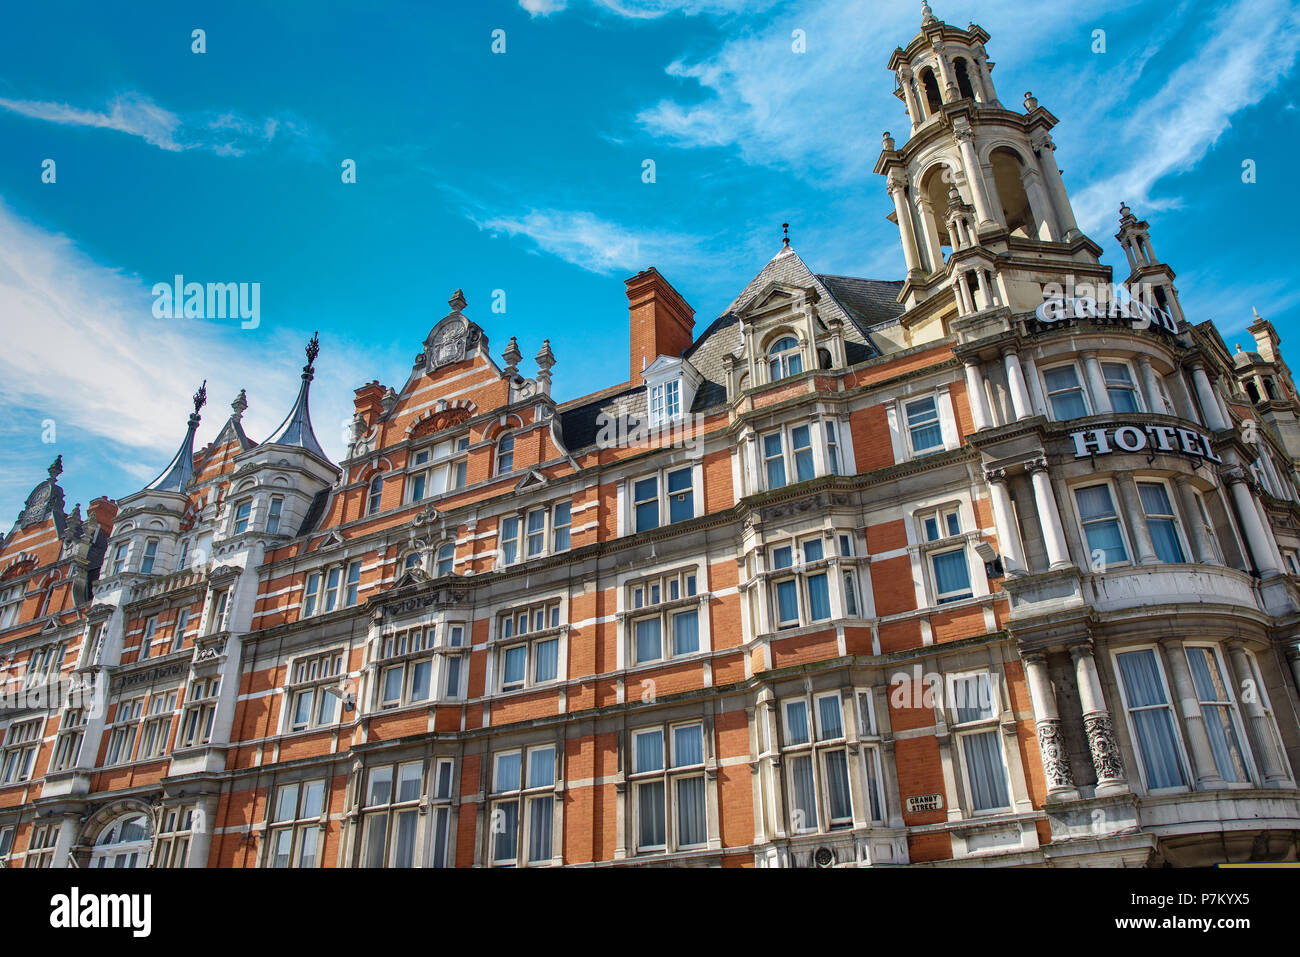 The Grand Hotel Leicester - Stock Image